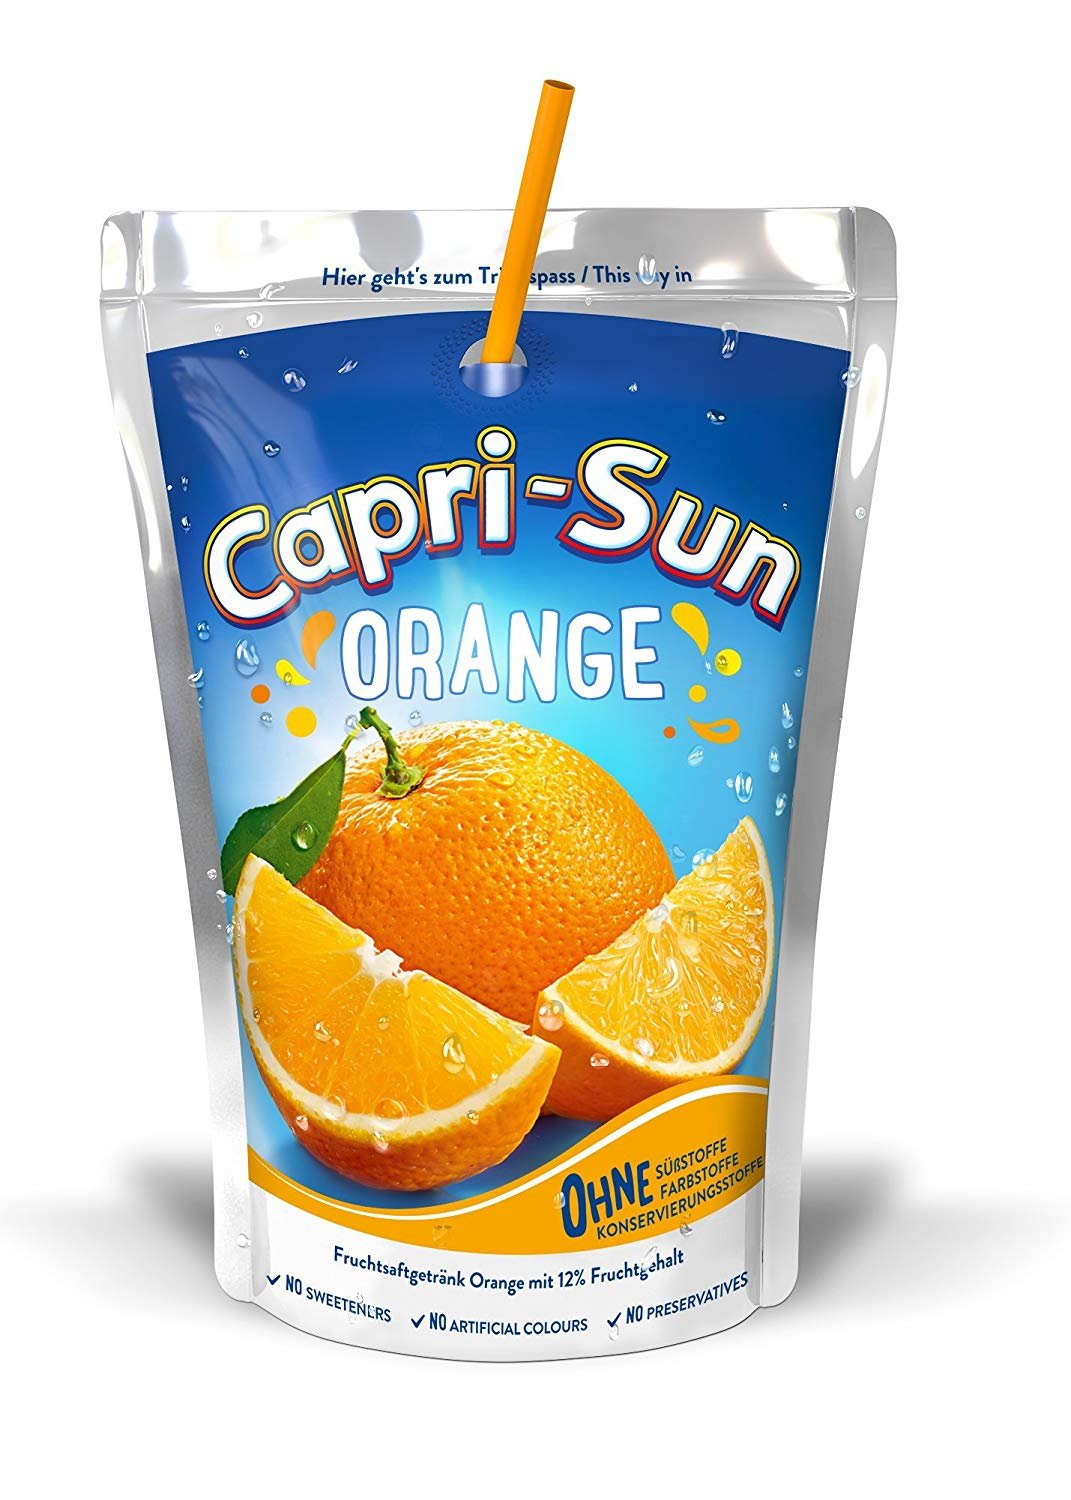 Caprisonne Orange Image